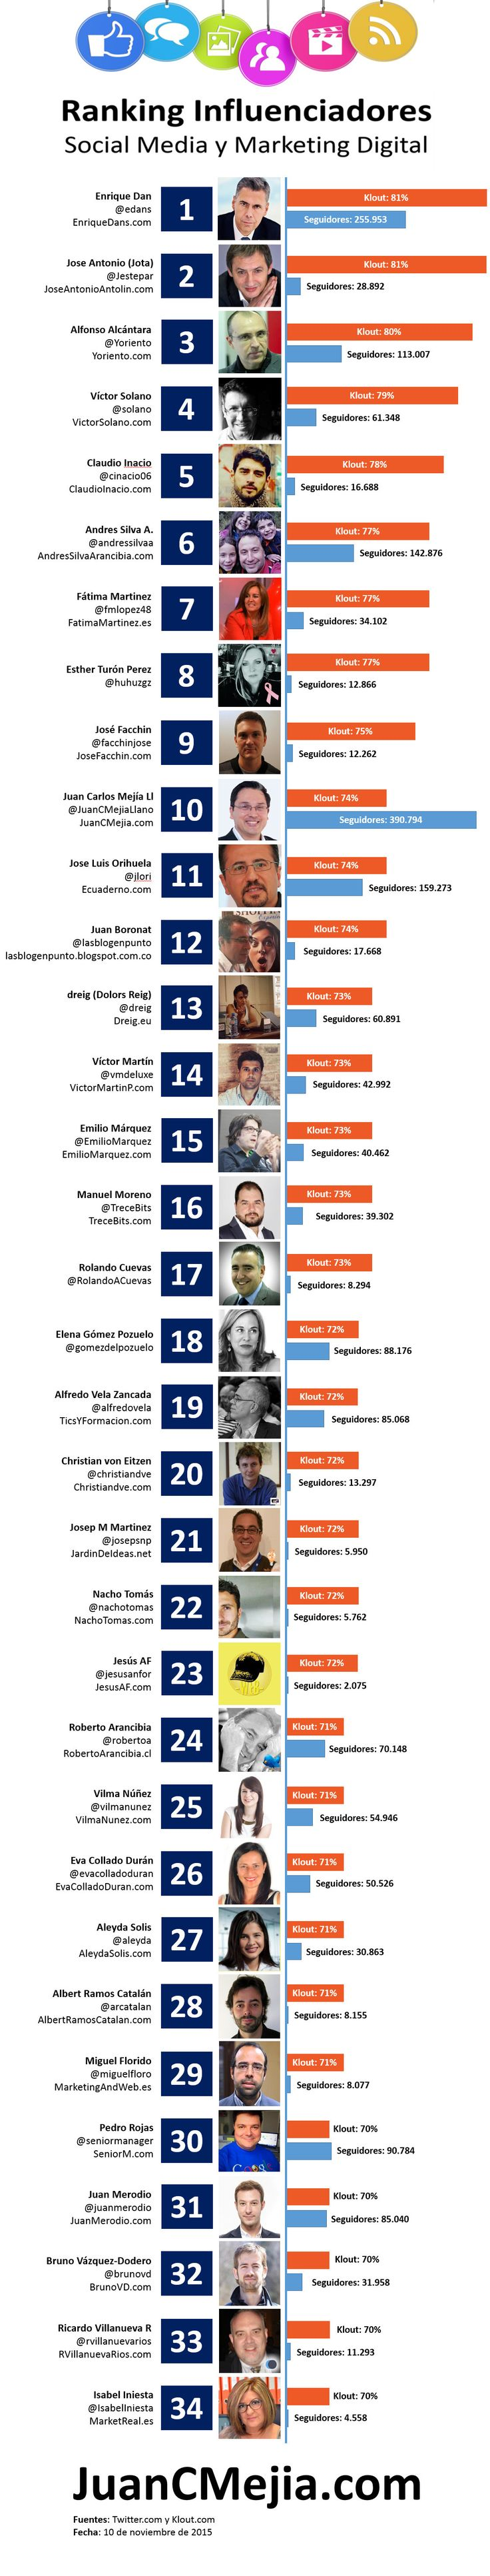 Ranking de influenciadores en español de social media y marketing digital. Actualizado noviembre de 2015. Infografía en español. #CommunityManager